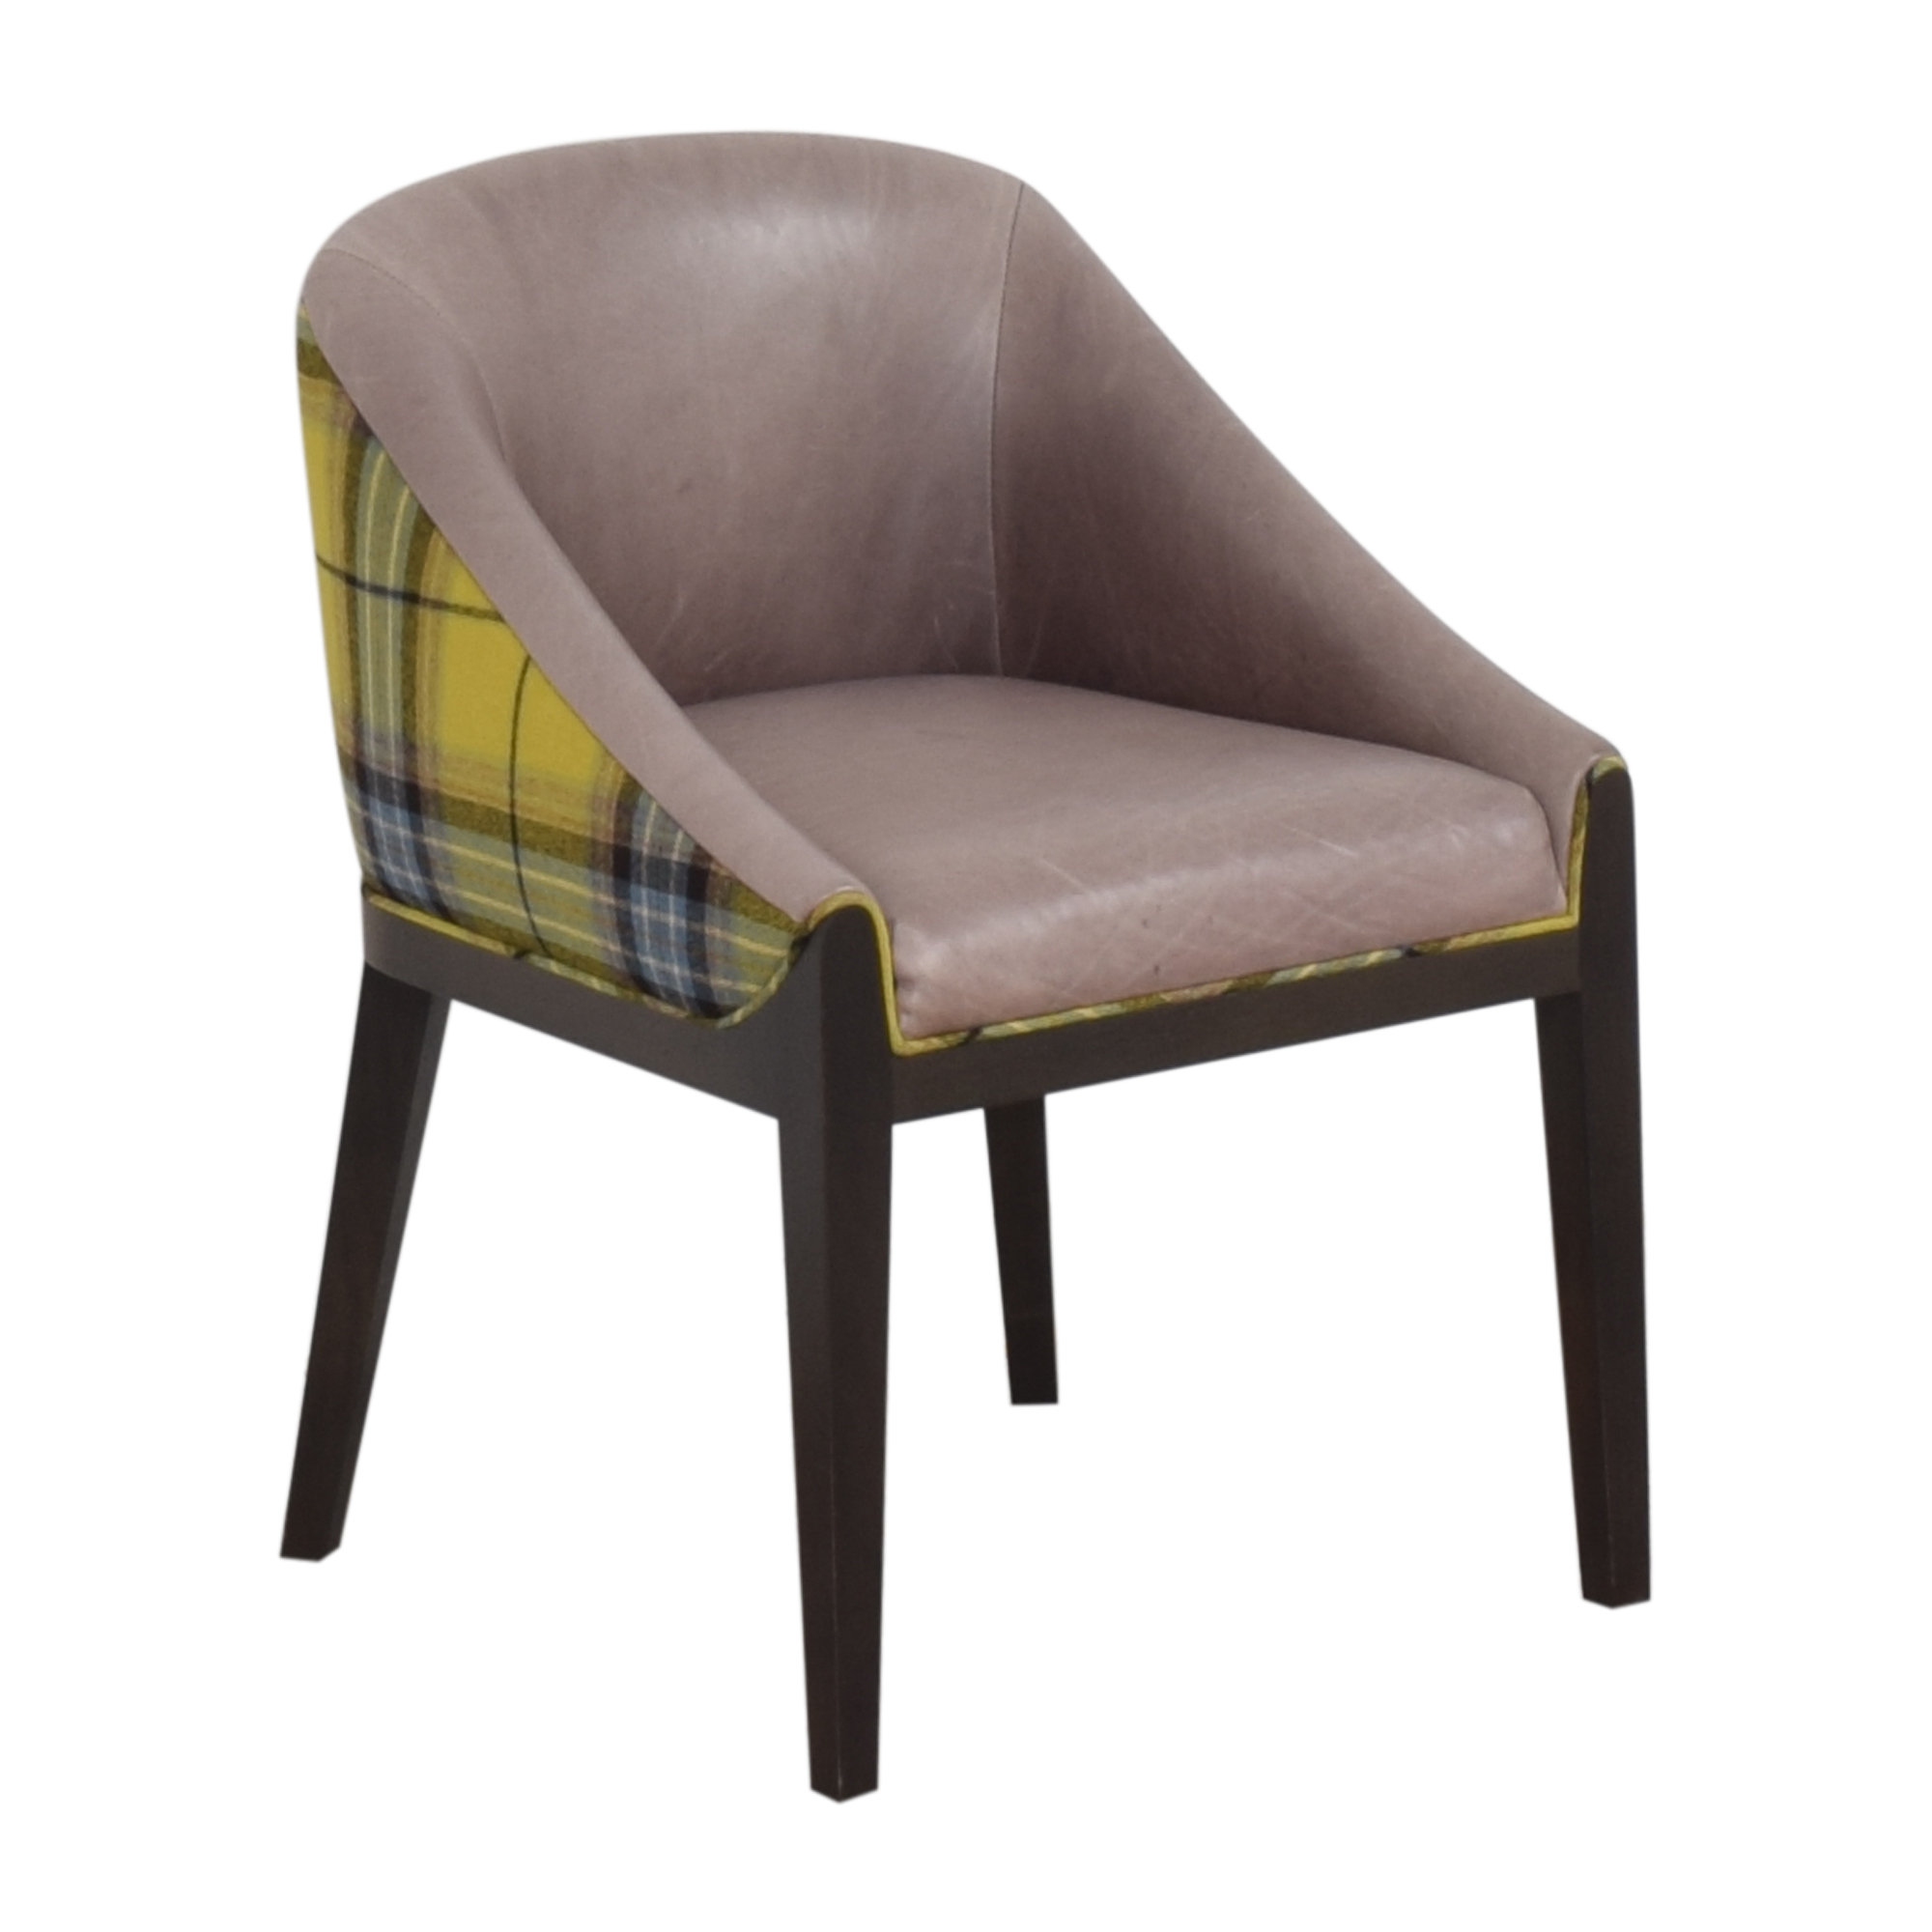 shop ducduc Two Tone Accent Chair ducduc Accent Chairs